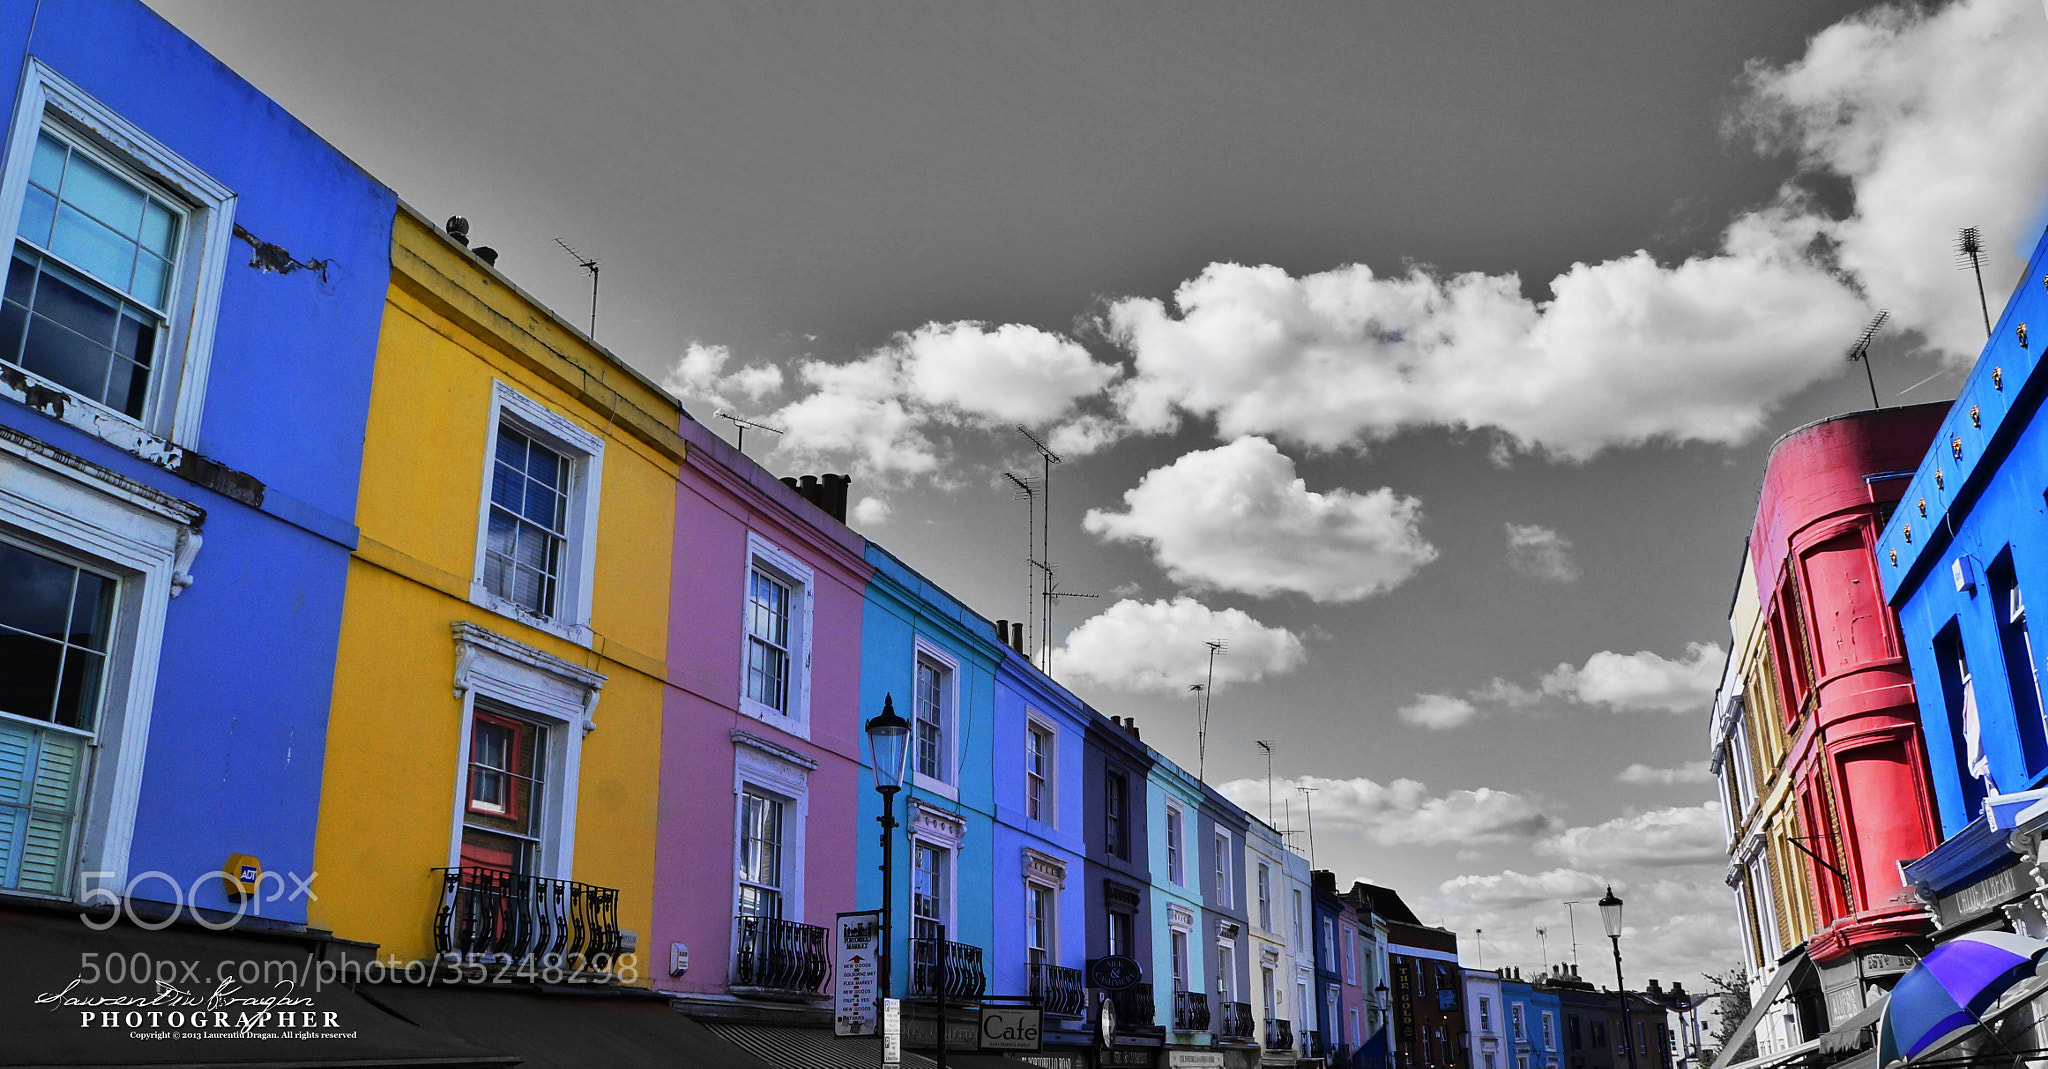 Photograph Portobello Road by Laur Dragan on 500px